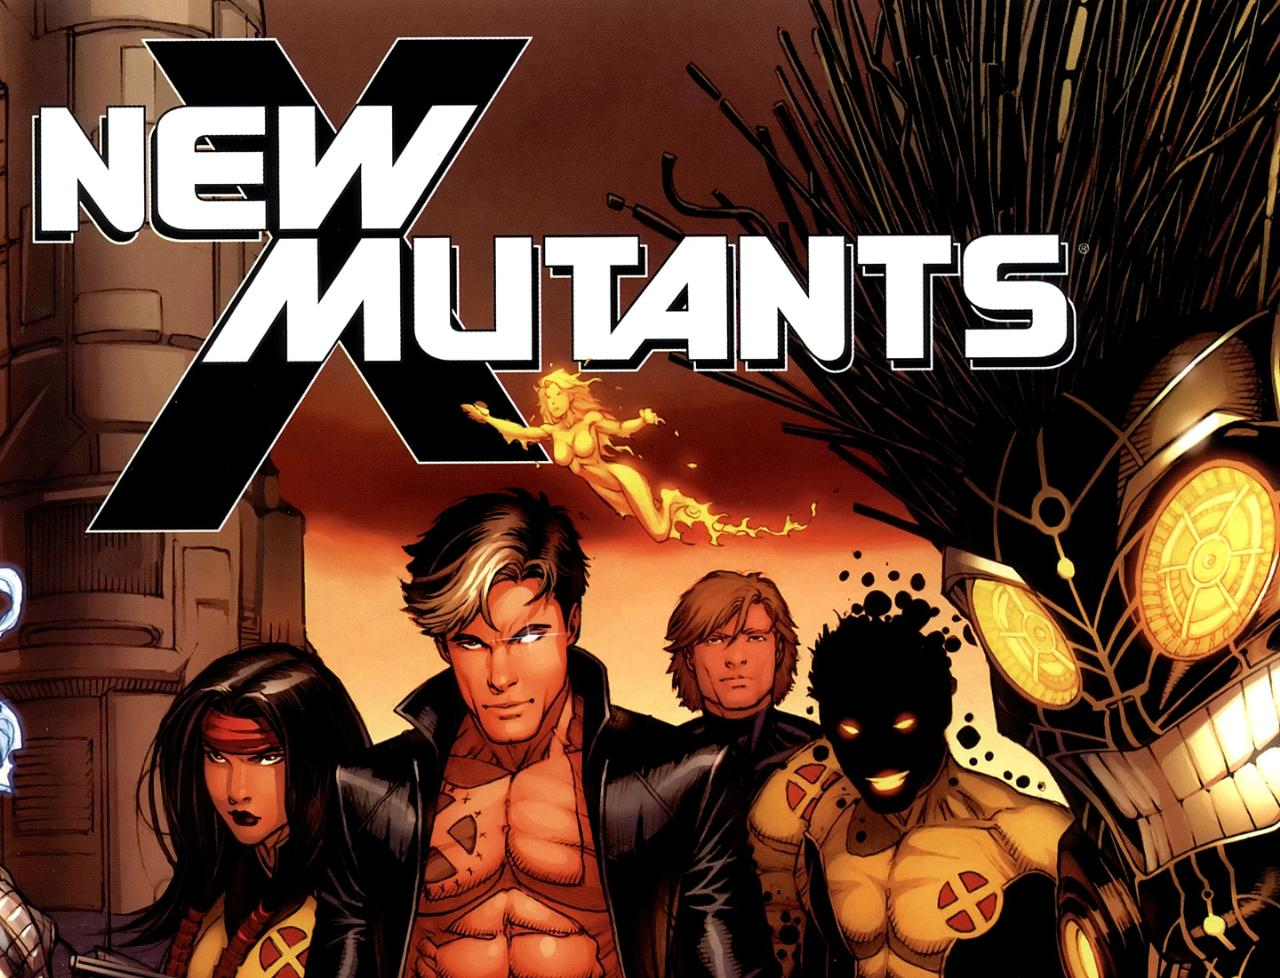 Images of The New Mutants | 1280x978